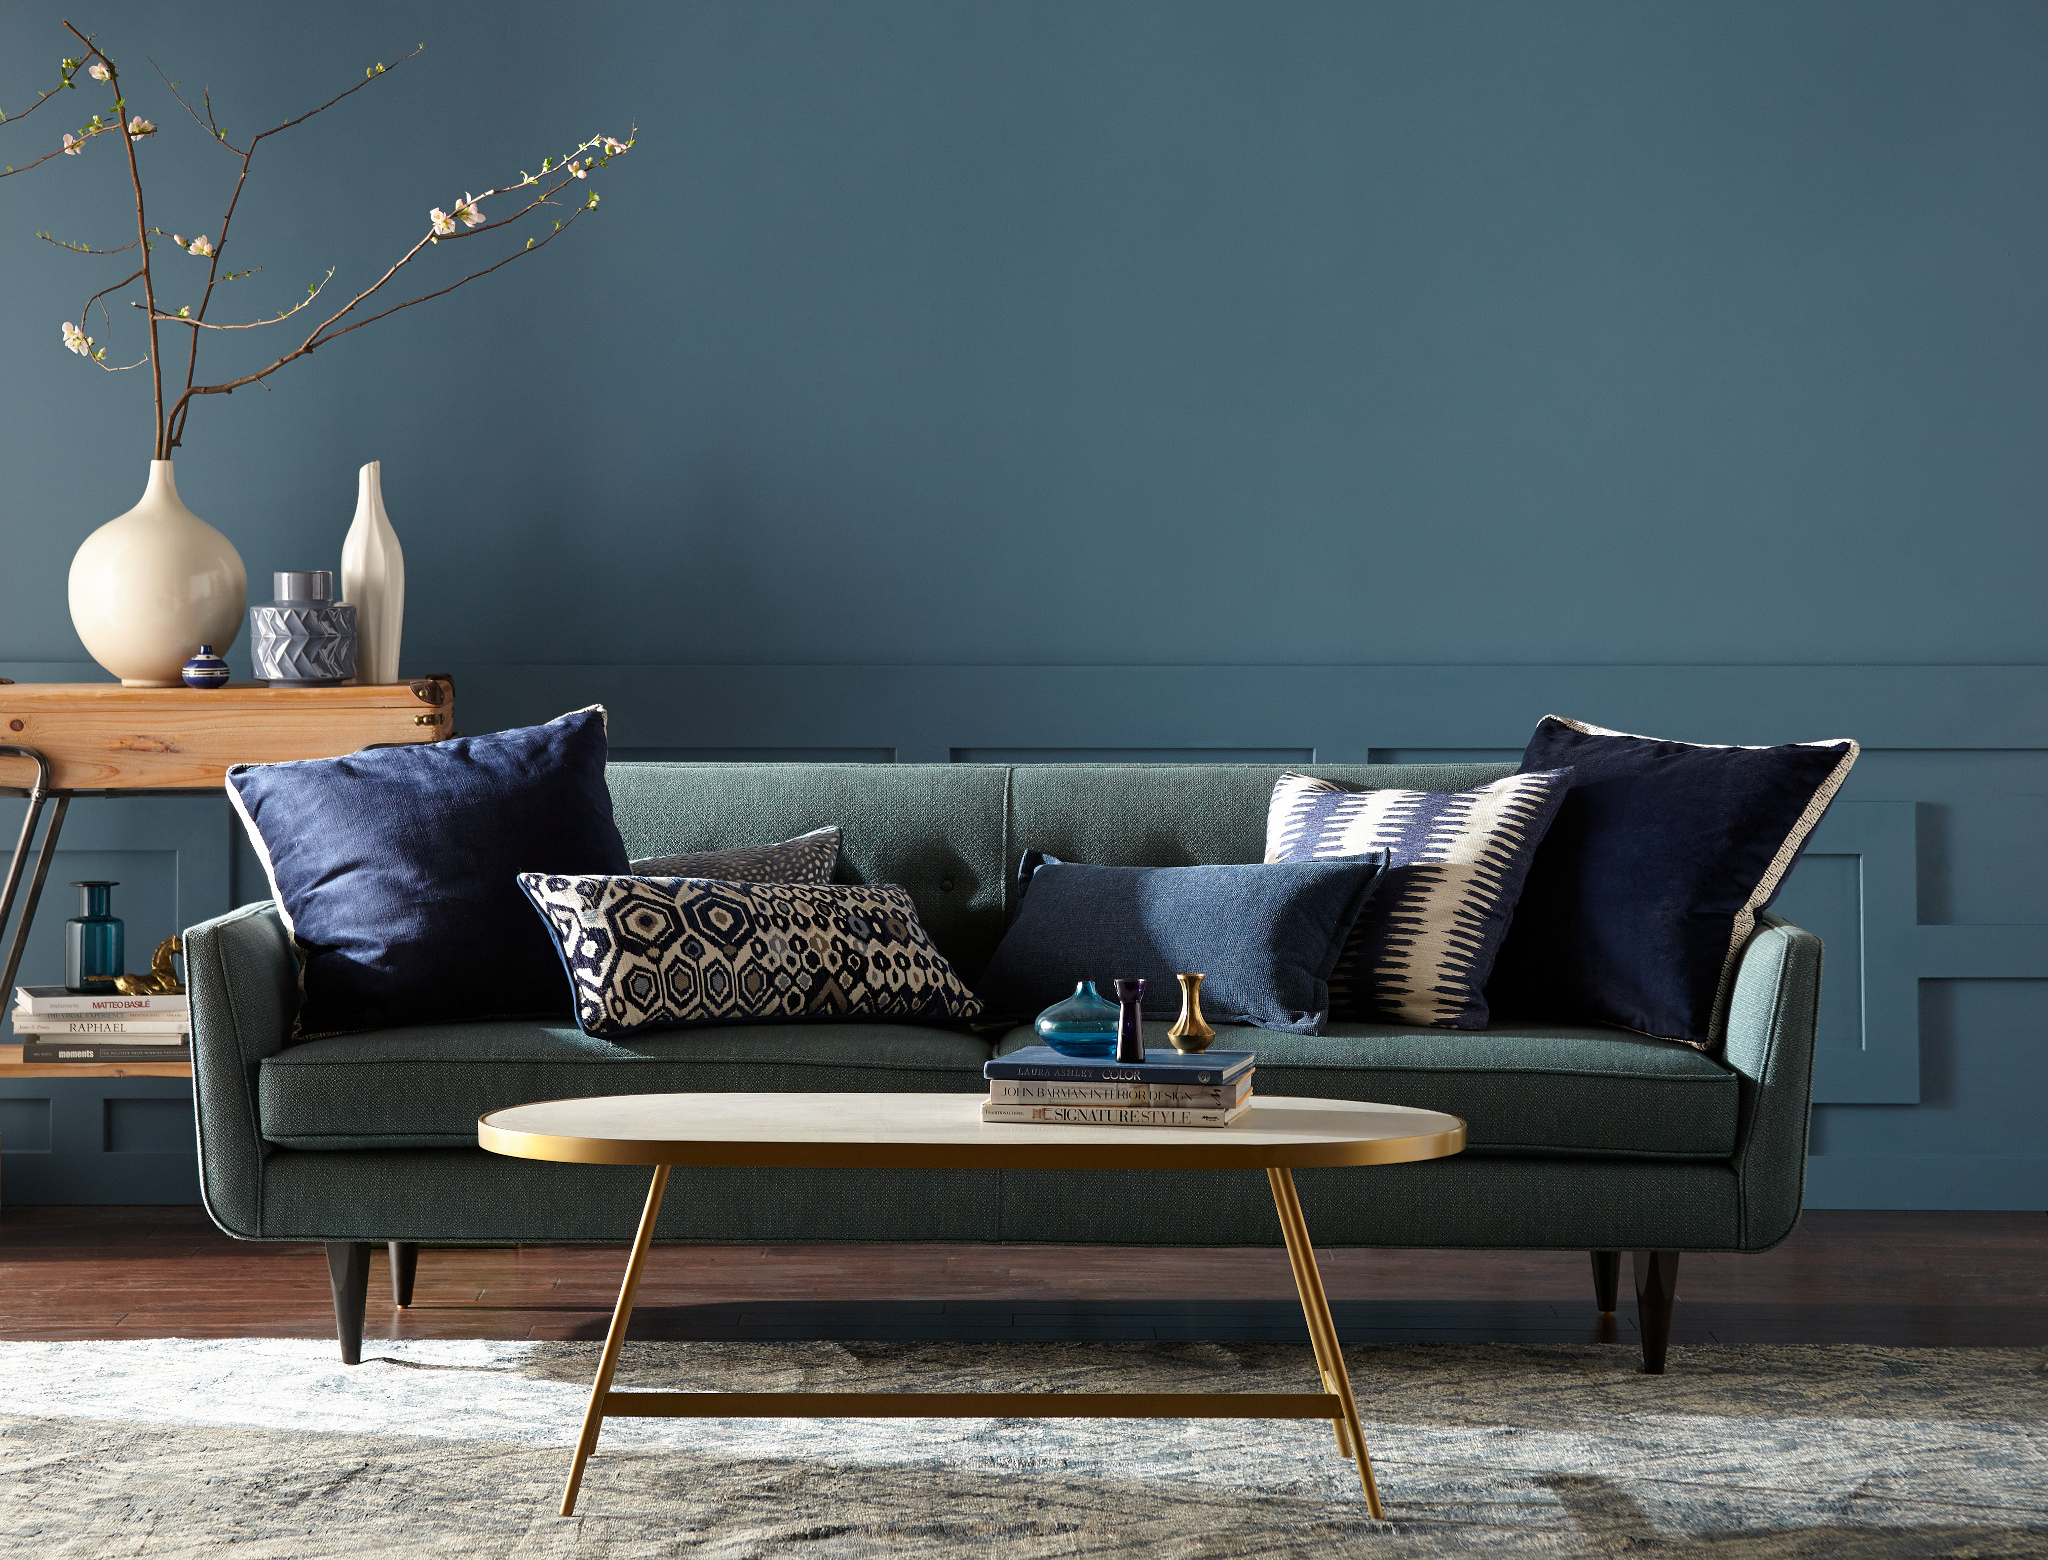 Behr Just Announced Its 2019 Color Of The Year, And You're Going To Love It